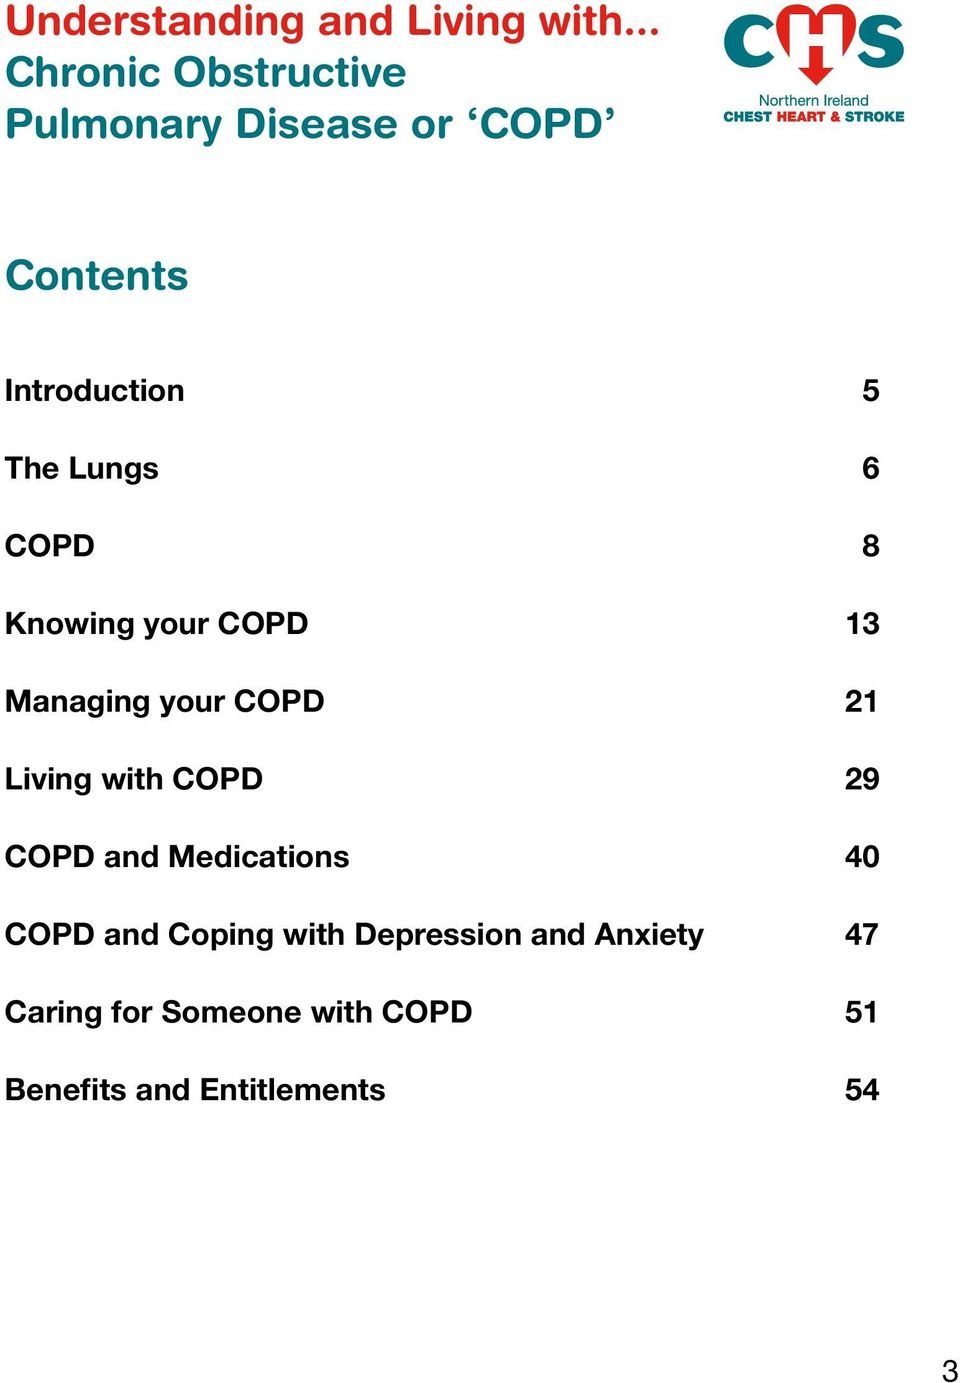 positive options for living with copd selfhelp and treatment for chronic obstructive pulmonary disease